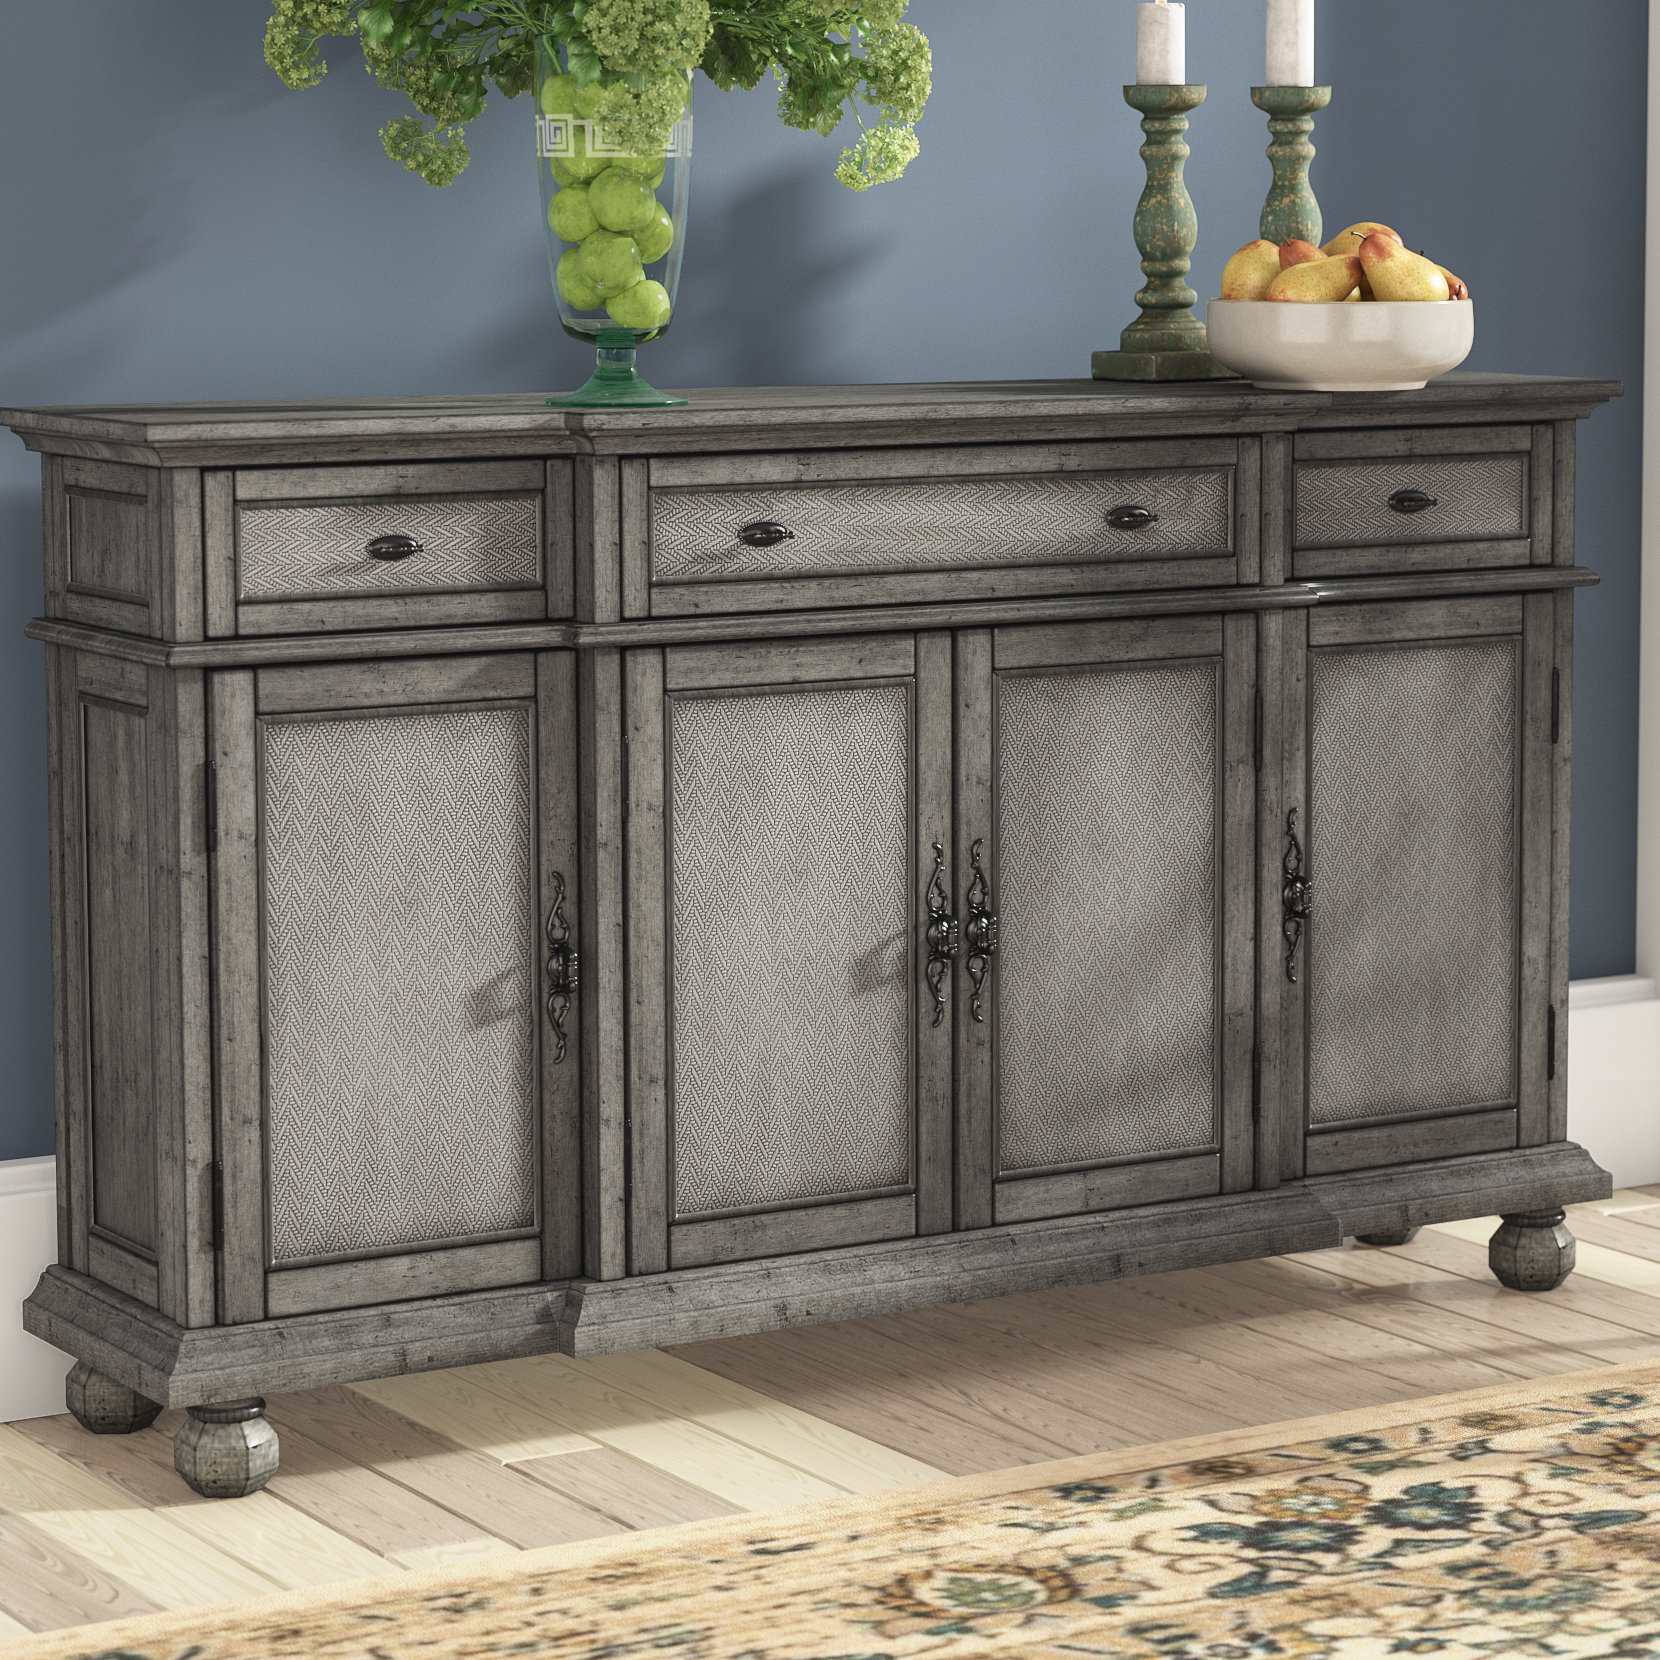 Inspiration about Giulia 3 Drawer Credenza Pertaining To Current Giulia 3 Drawer Credenzas (#2 of 20)